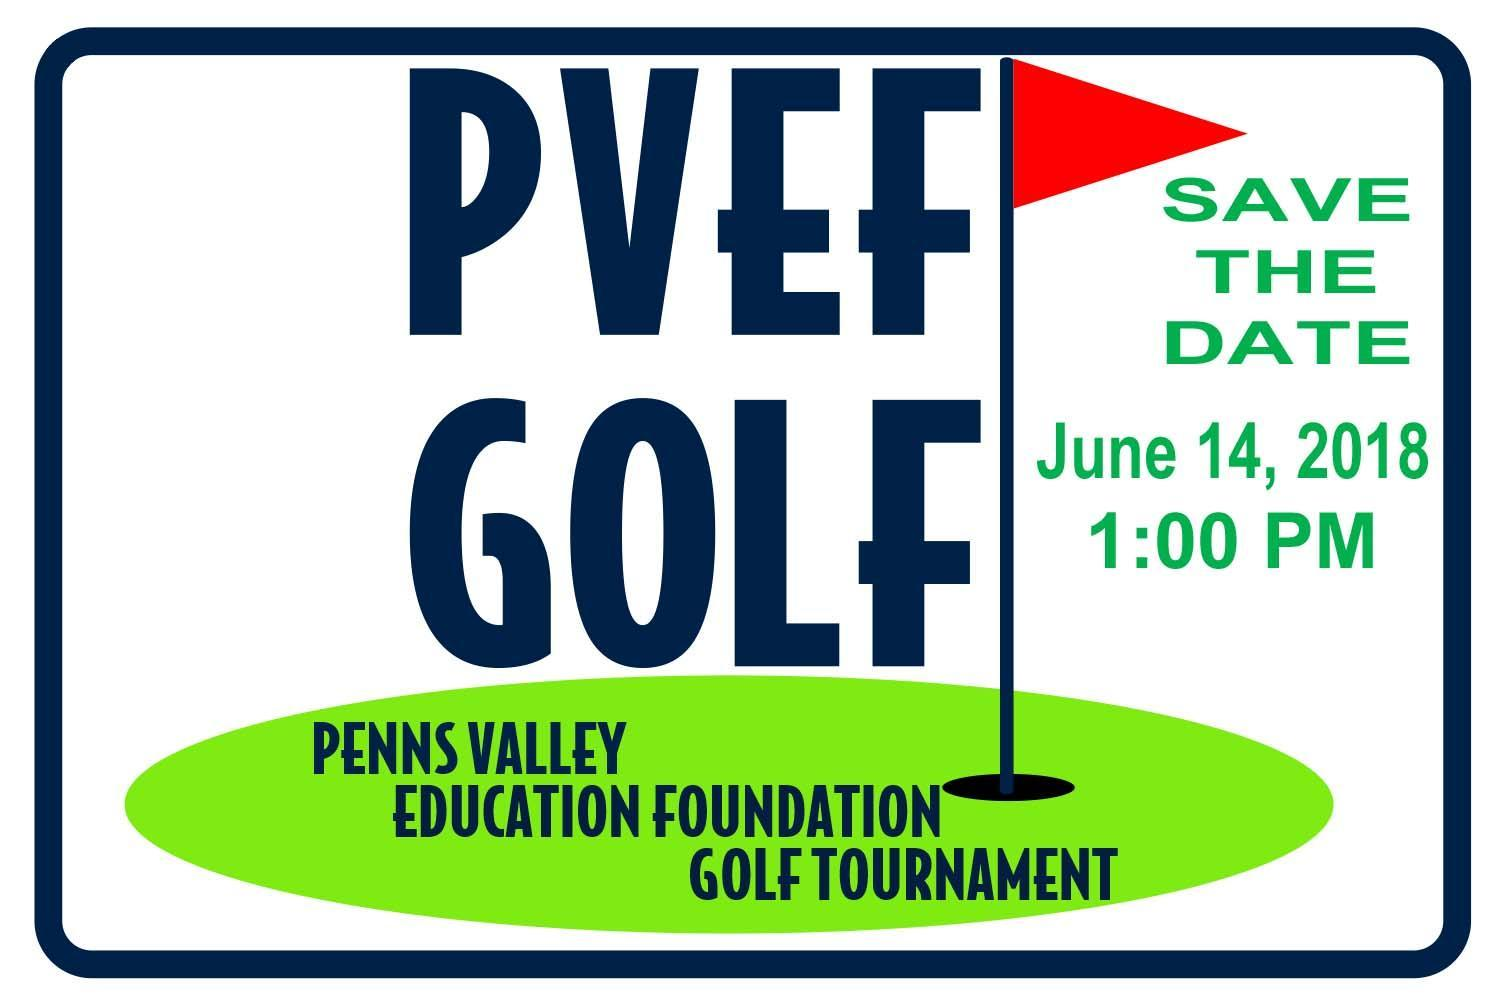 2018 PVEF Golf Tournament Save the date